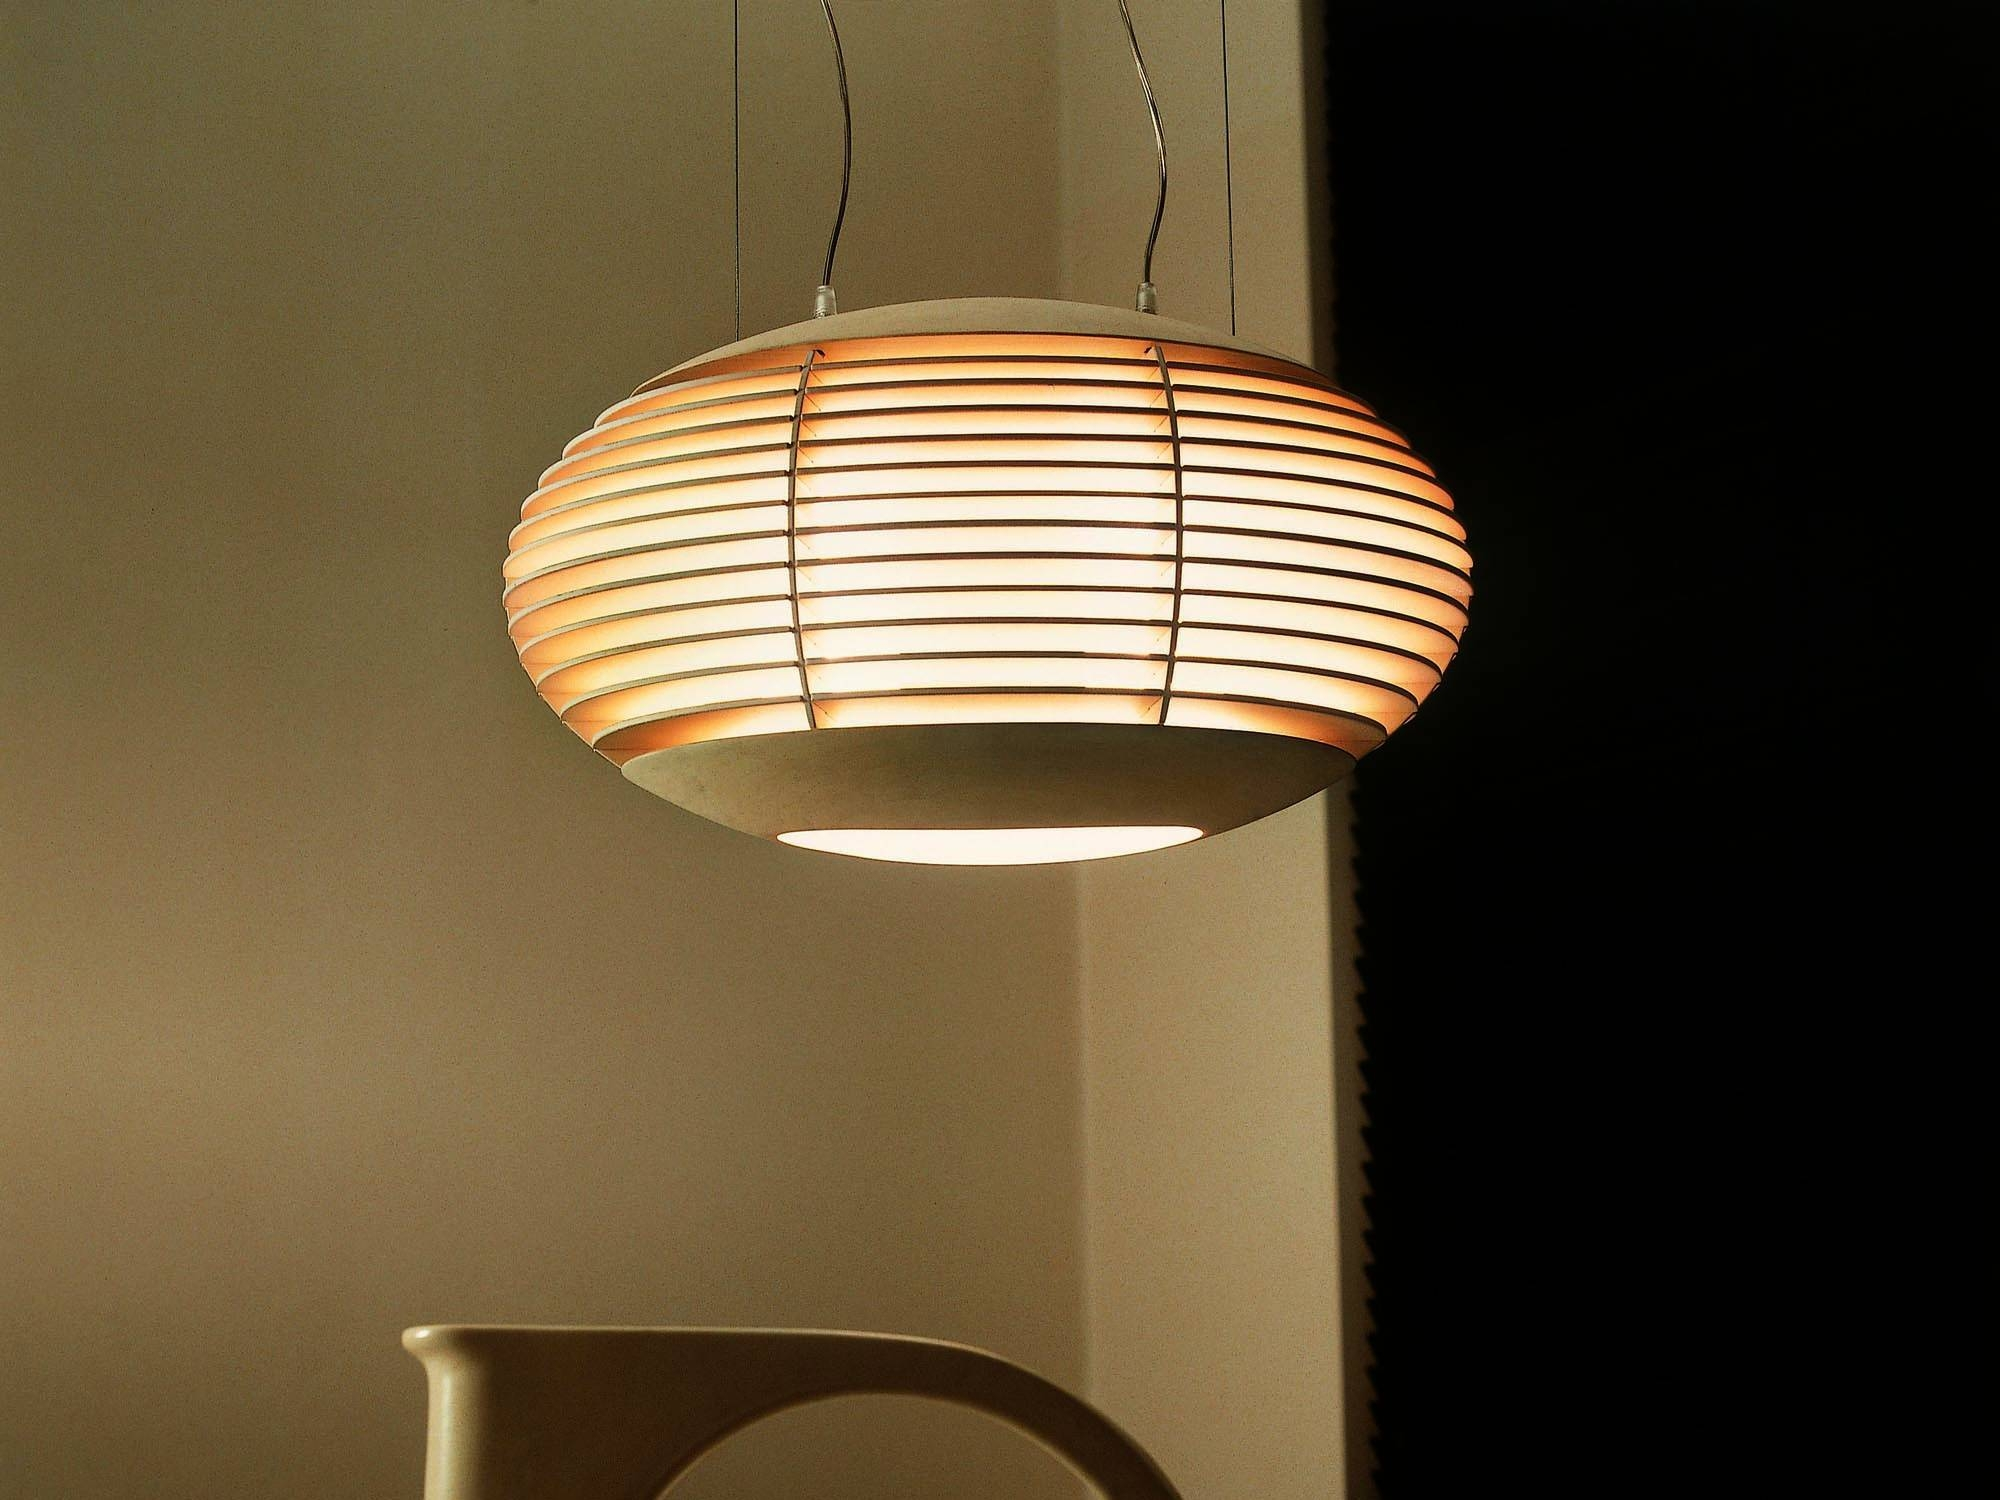 Best Fresh Wood Veneer Pendant Light Usa #9988 within Wood Veneer Pendant Lights (Image 3 of 15)